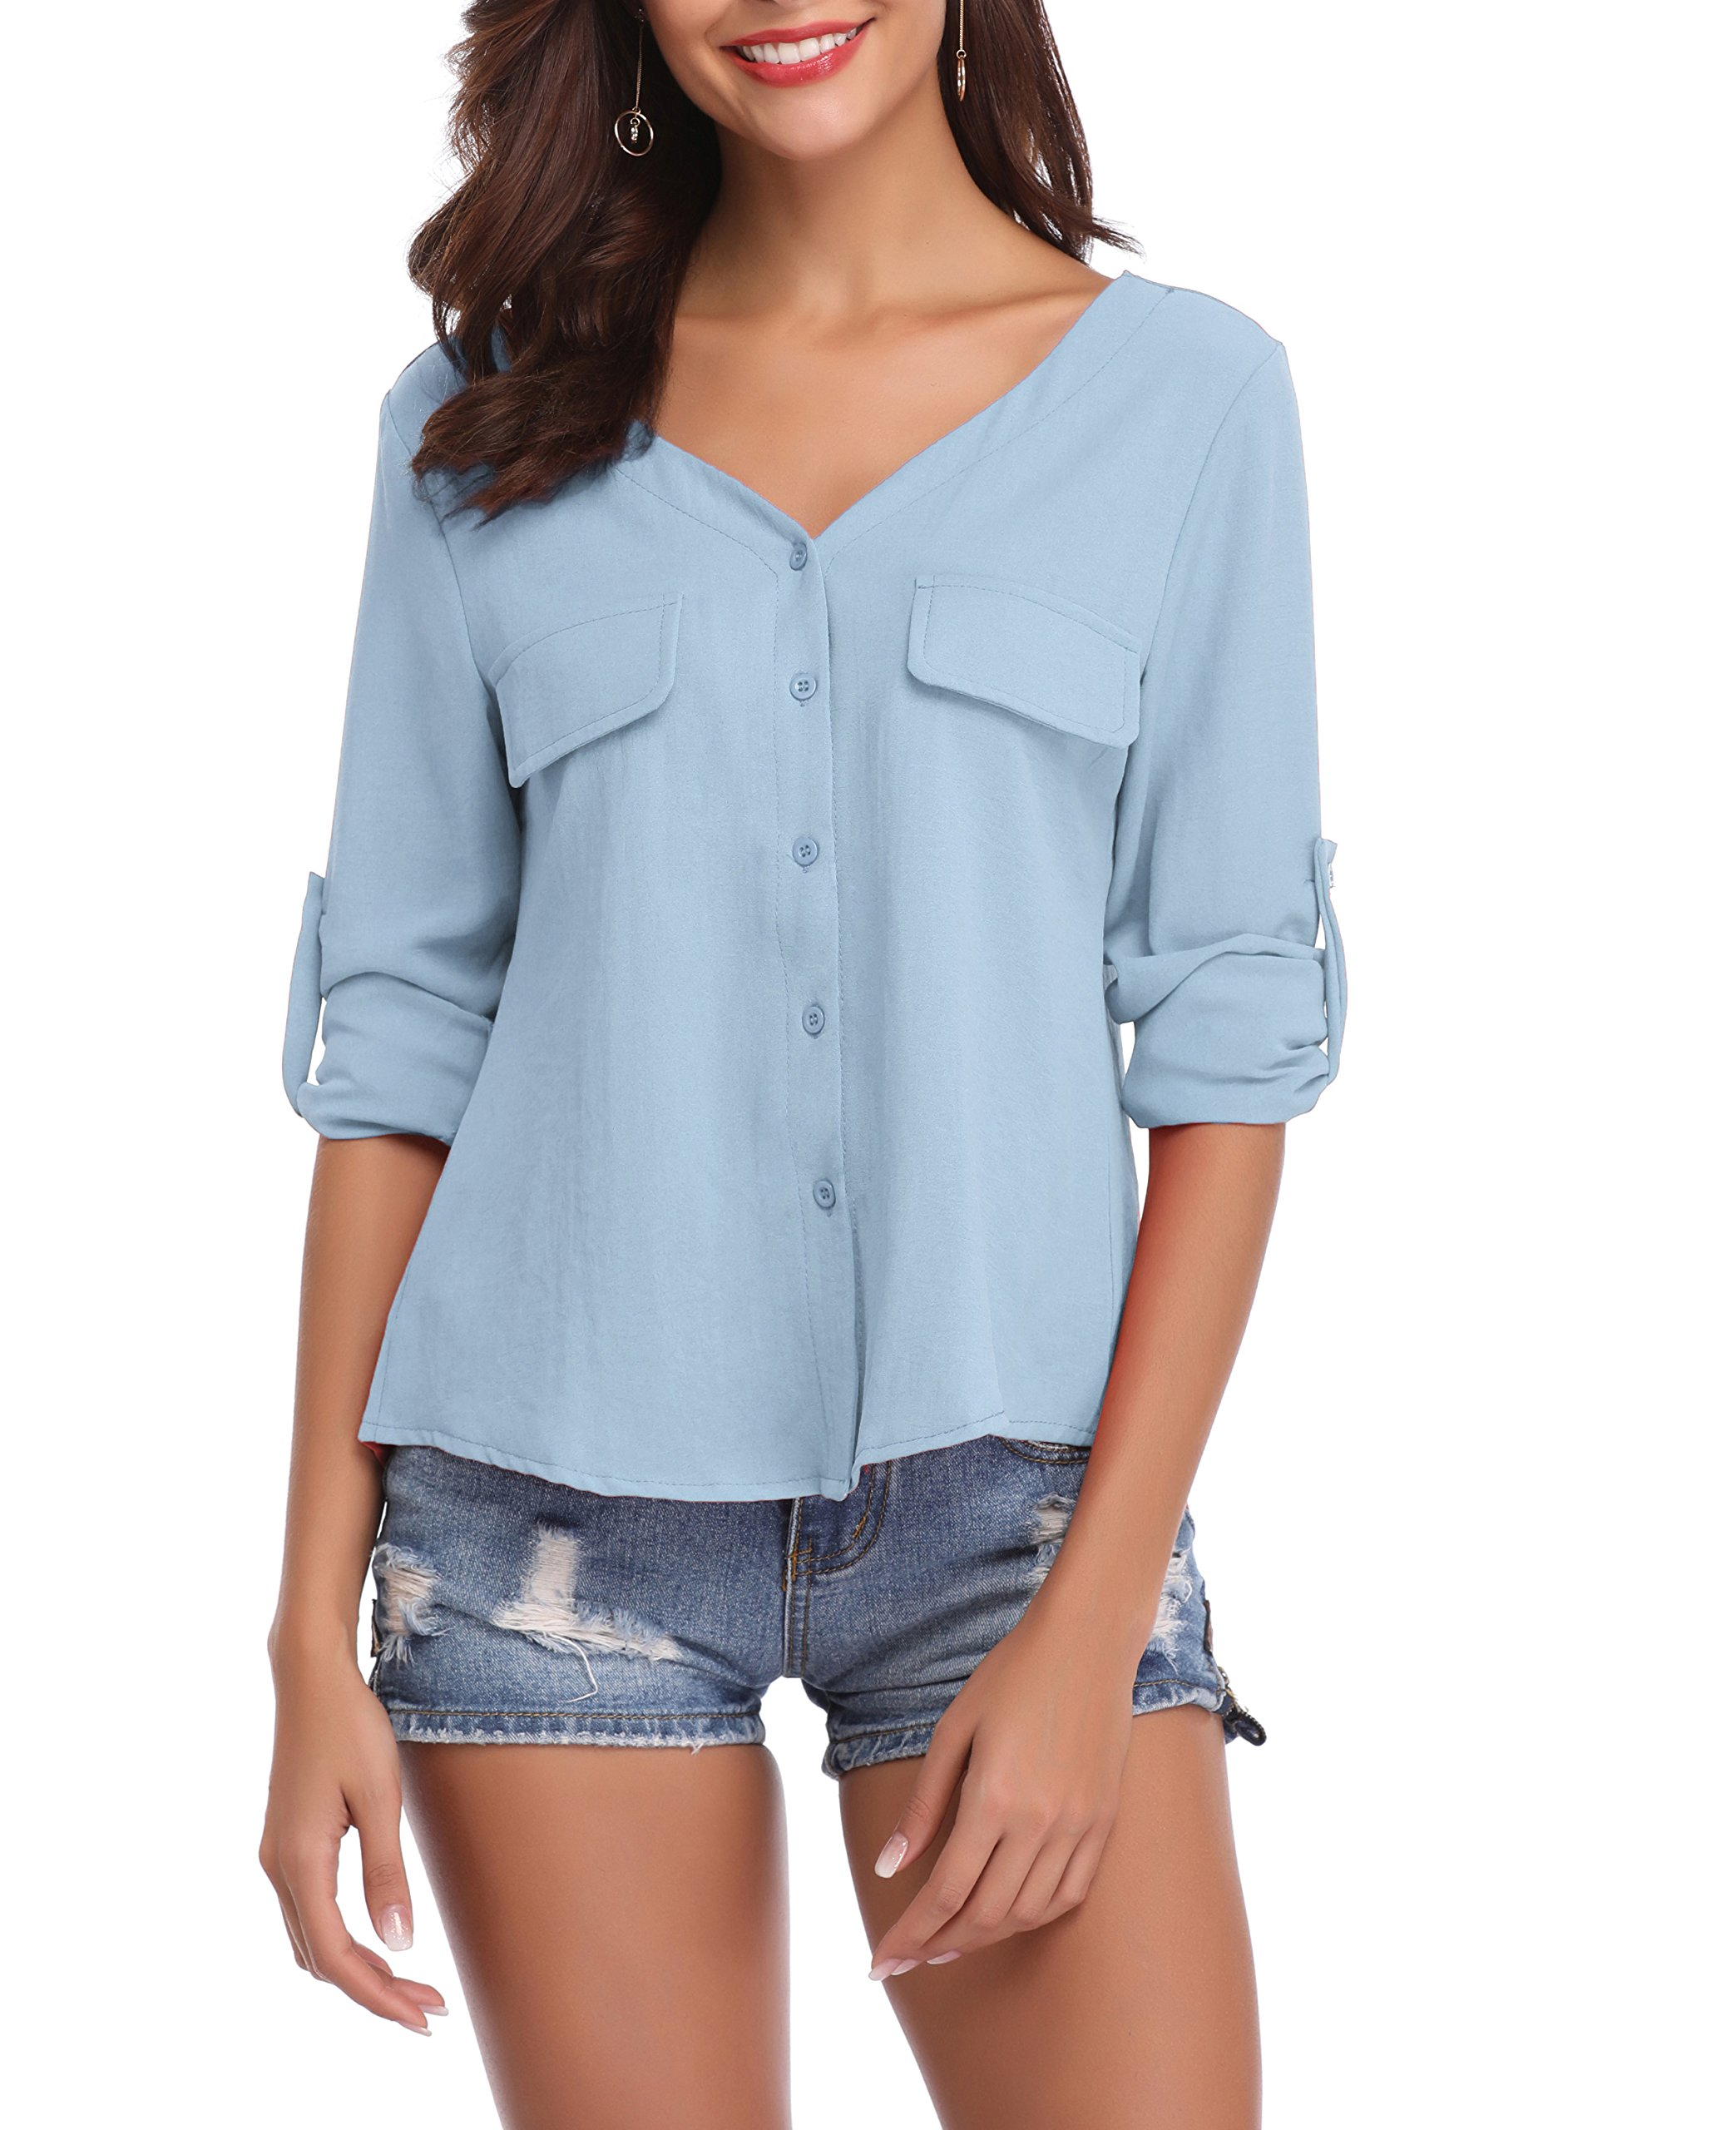 LYHNMW YHNMW Women's Casual Button Down Shirt Loose Roll-up Sleeve Tops Chiffon V-Neck Blouse